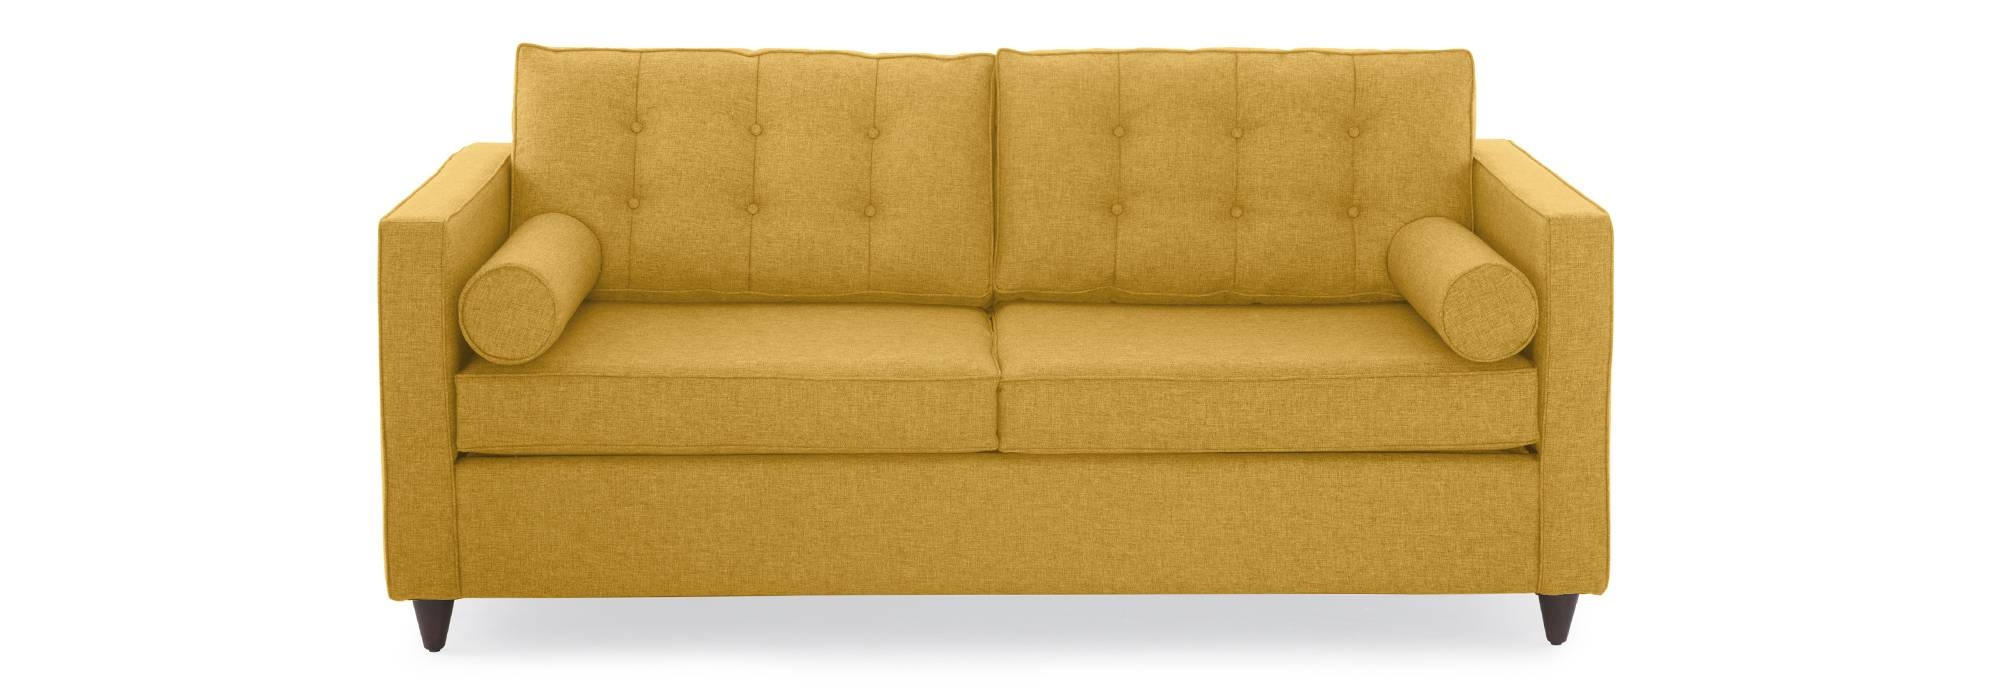 Braxton Sleeper Sofa | Joybird with Braxton Sofa (Image 16 of 30)